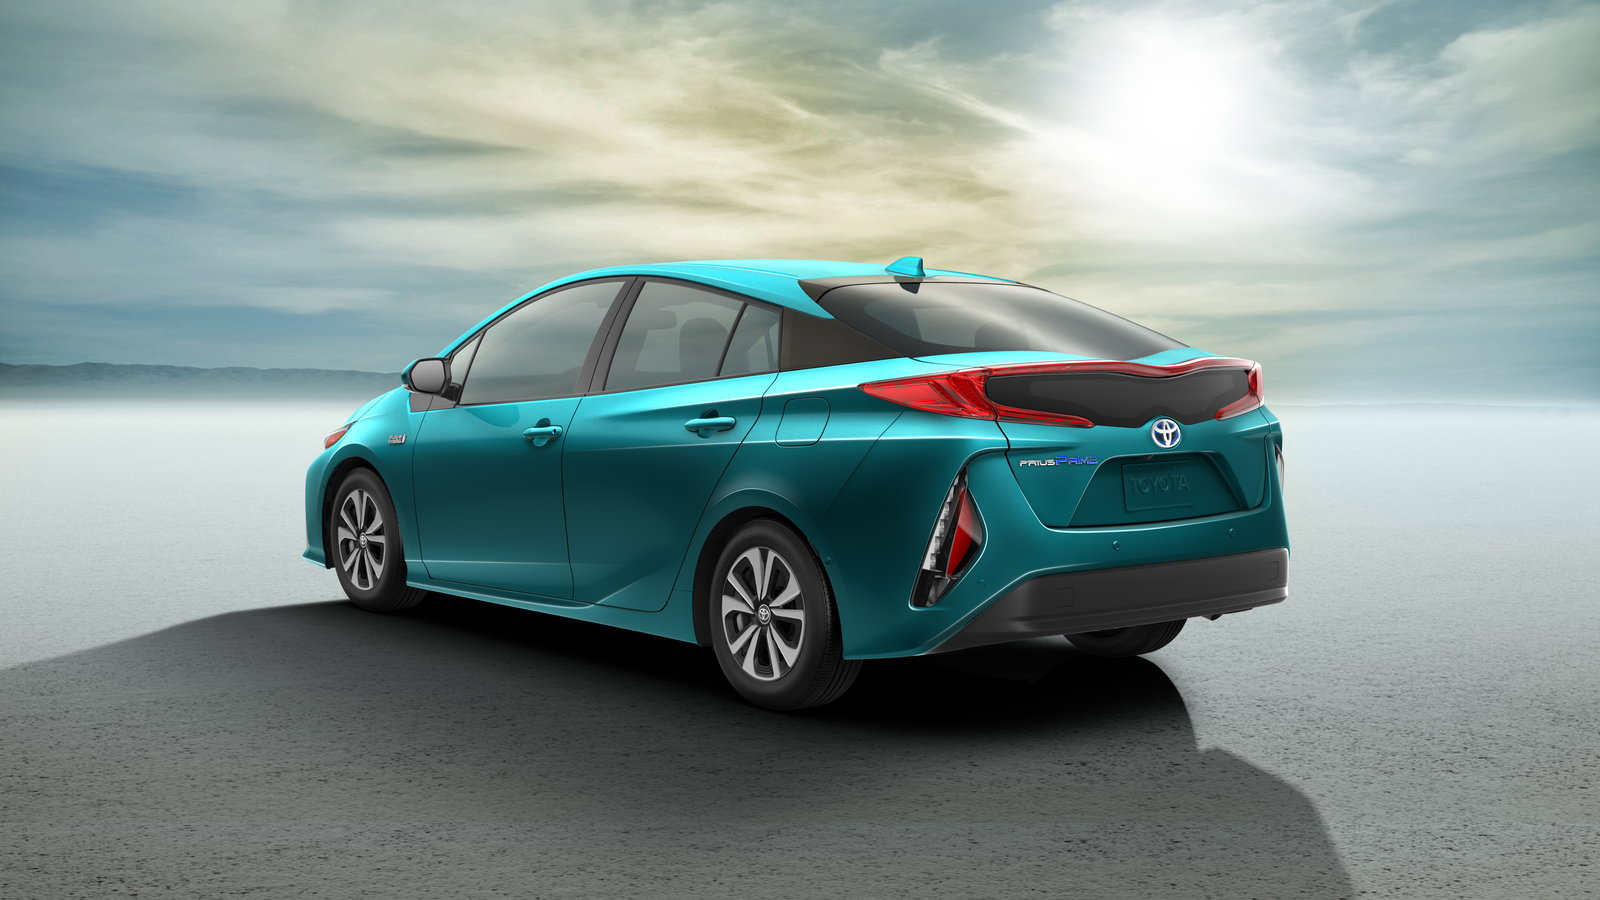 2017 Toyota Prius Prime: Preview Info, Pricing, Release Date